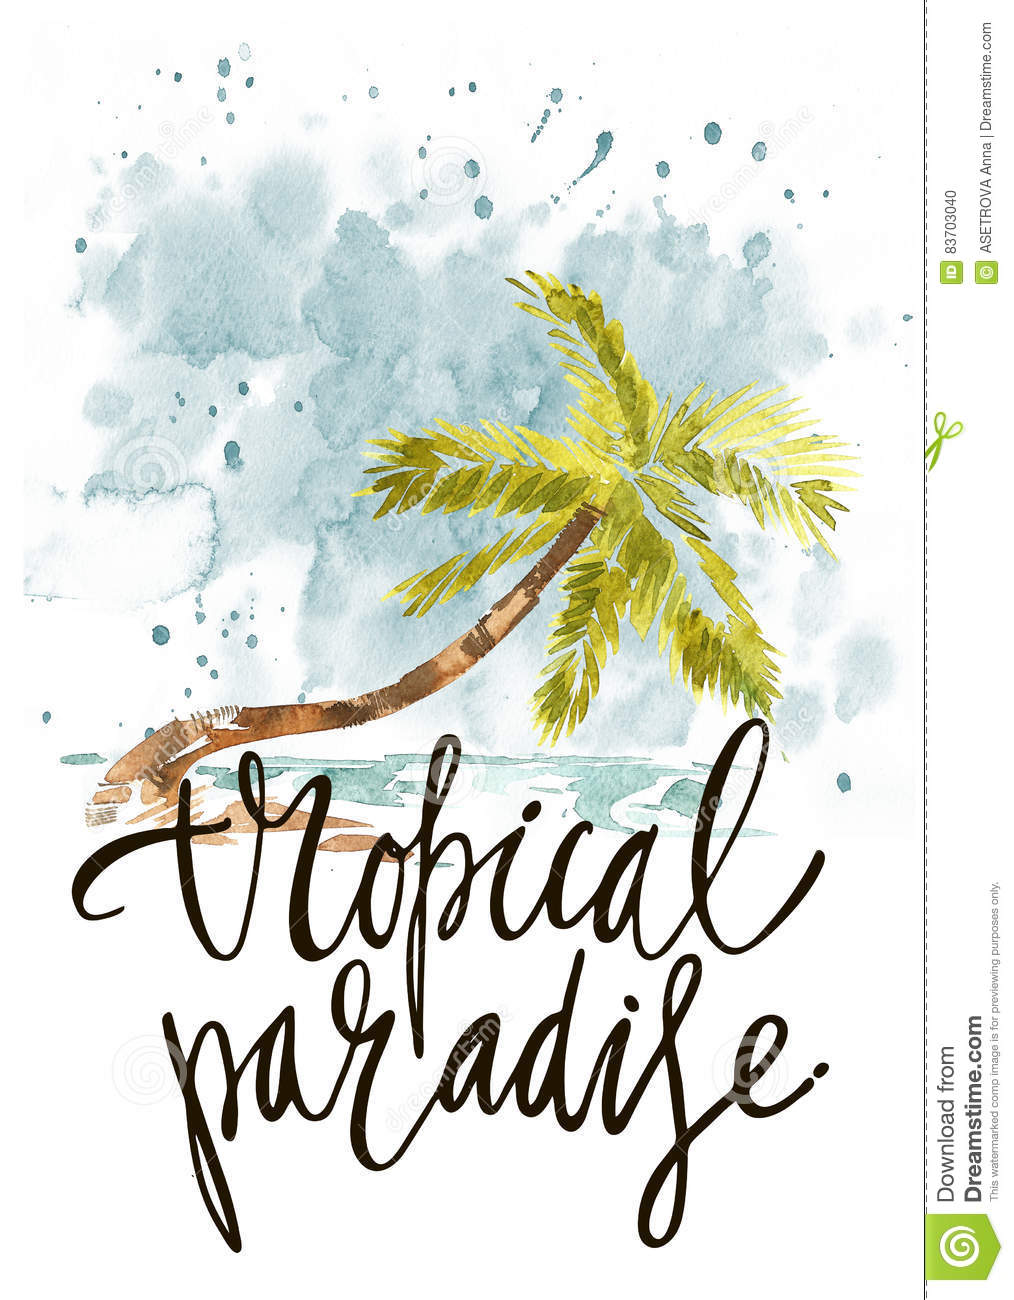 Vintage Watercolor Summer Tropical Paradise With Typography Design, Trees And Lettering.  Set, Fashion , T-shirt . Stock Illustration